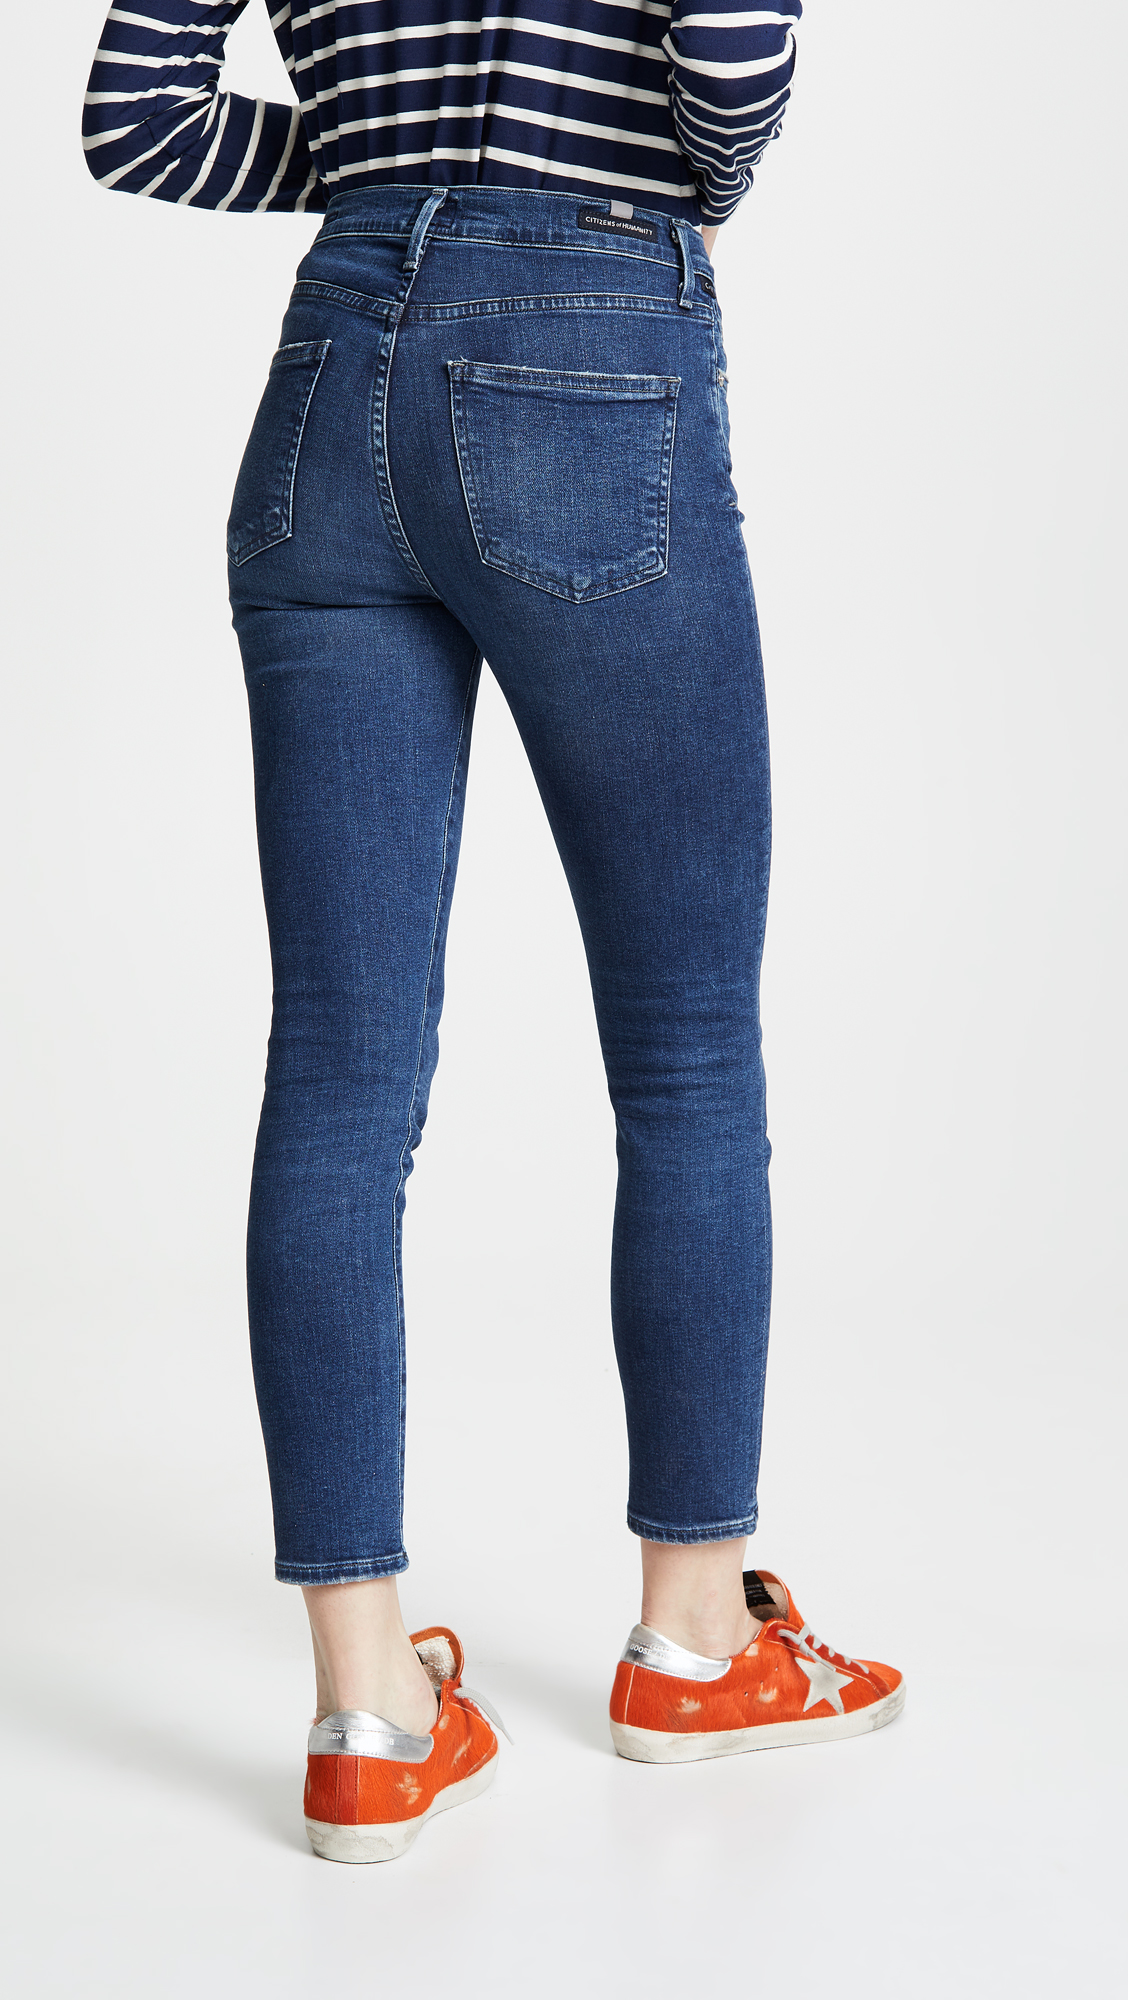 0d33c35fdd5e0 Citizens of Humanity Rocket Crop High Rise Skinny Jeans